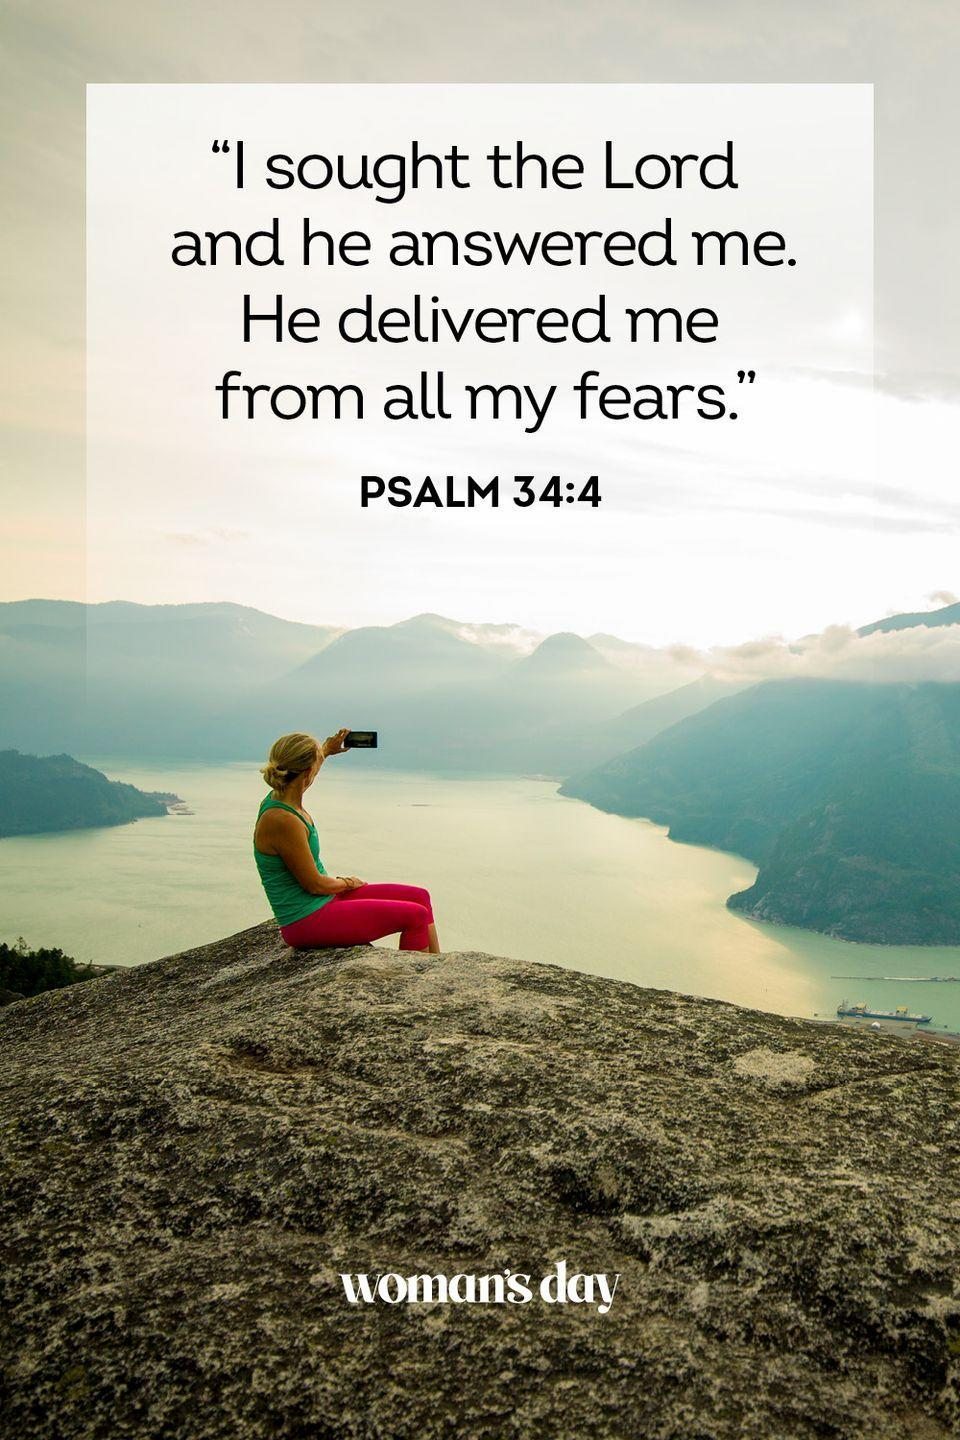 """<p>""""I sought the Lord and he answered me. He delivered me from all my fears."""" </p><p><strong>The Good News:</strong> As long as you look to God for solace, and believe in His presence, He will always deliver peace to an anxious mind and body.</p>"""